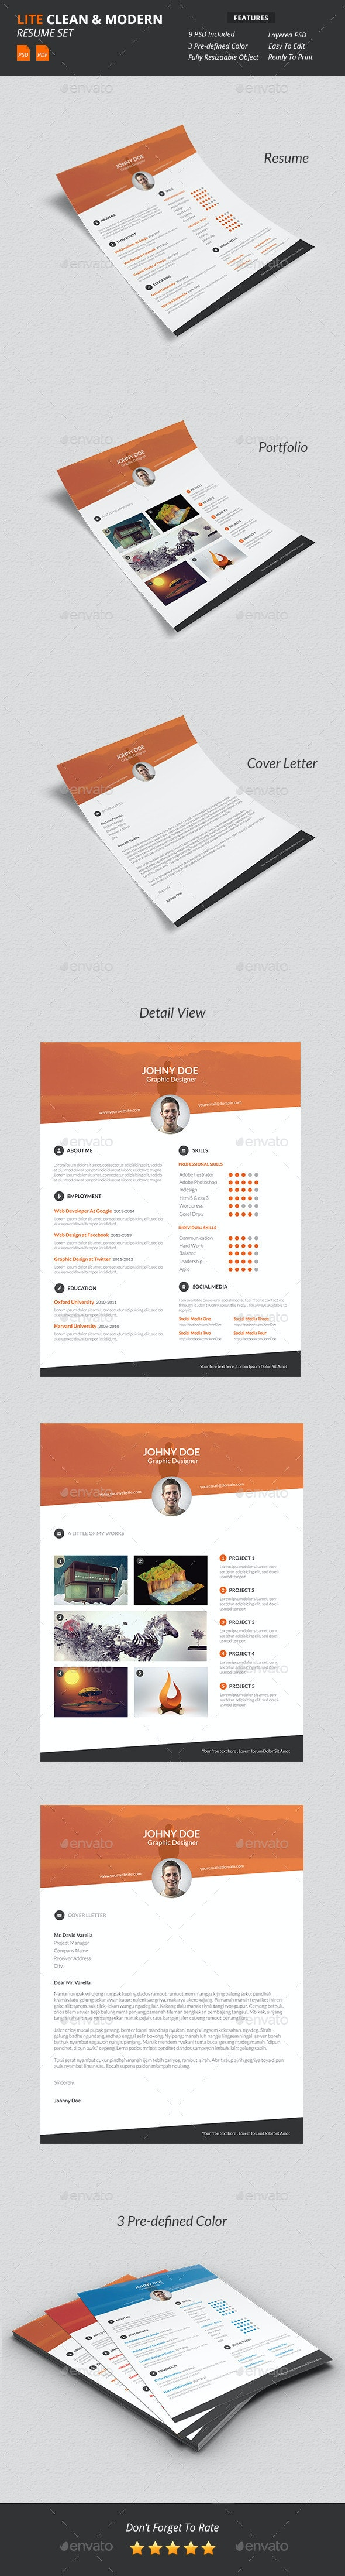 Lite - Clean & Modern Resume Template - Resumes Stationery